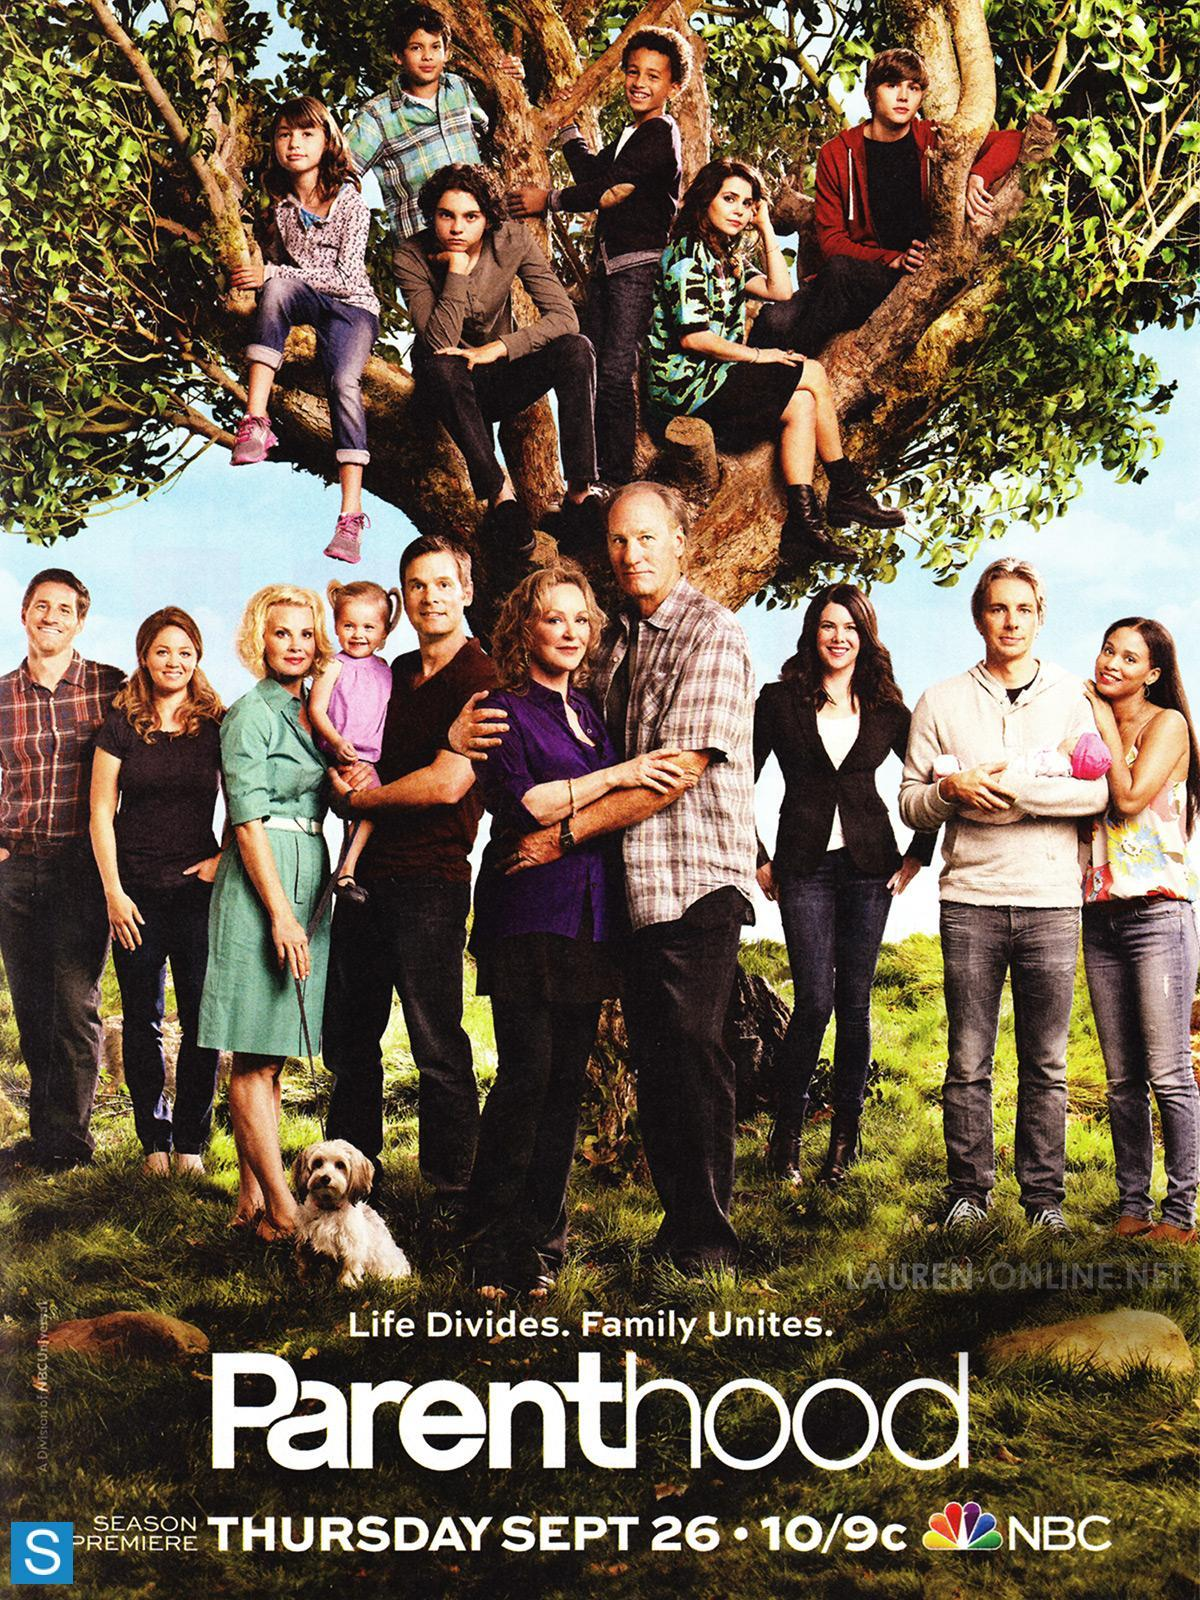 http://couchtimejill.files.wordpress.com/2013/09/parenthood-season-5-promotional-poster_full.jpg